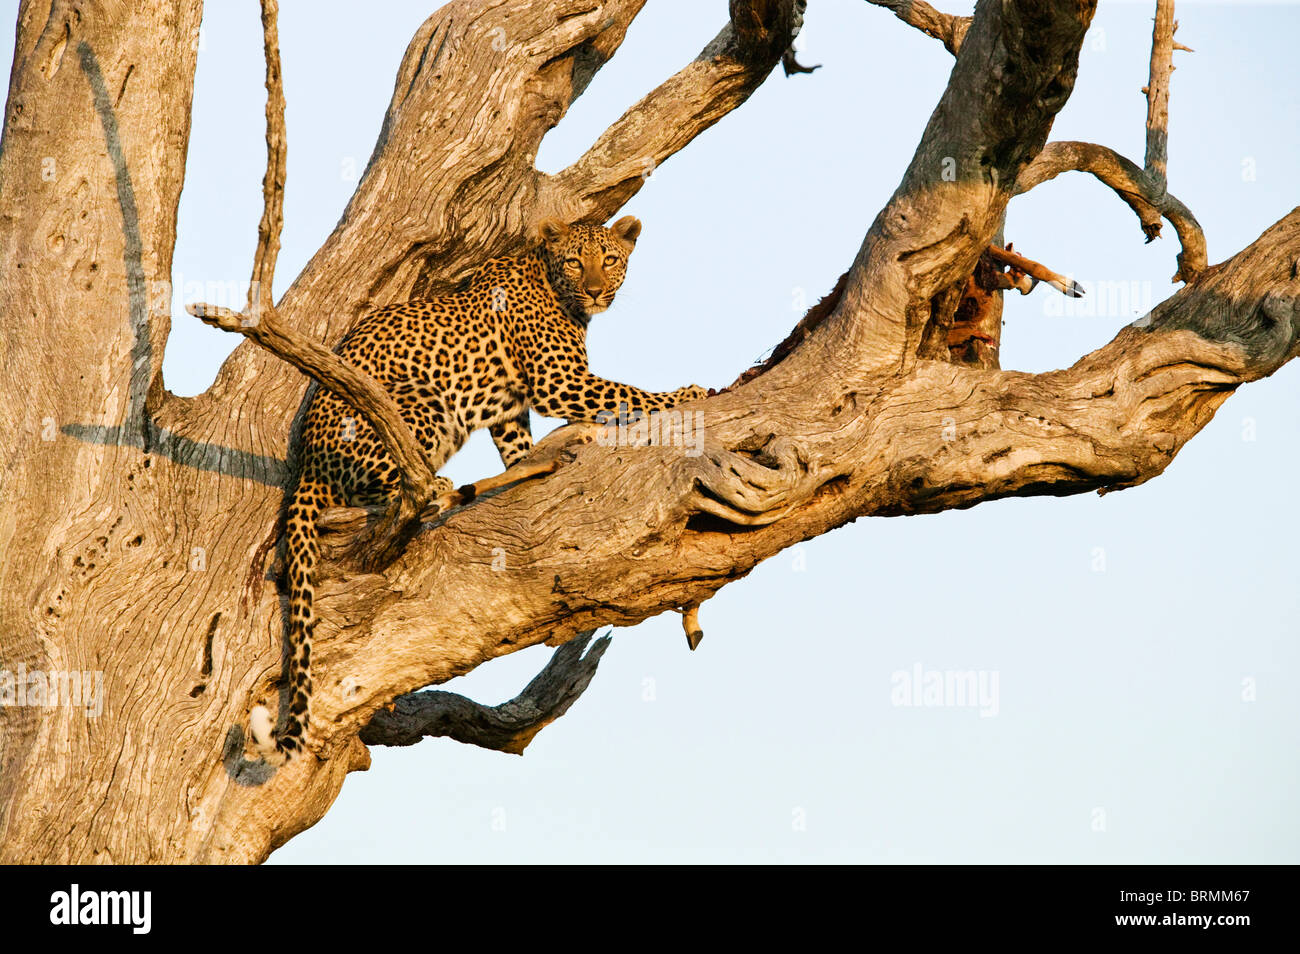 Leopard on the sturdy branches of a leadwood tree in warm light - Stock Image